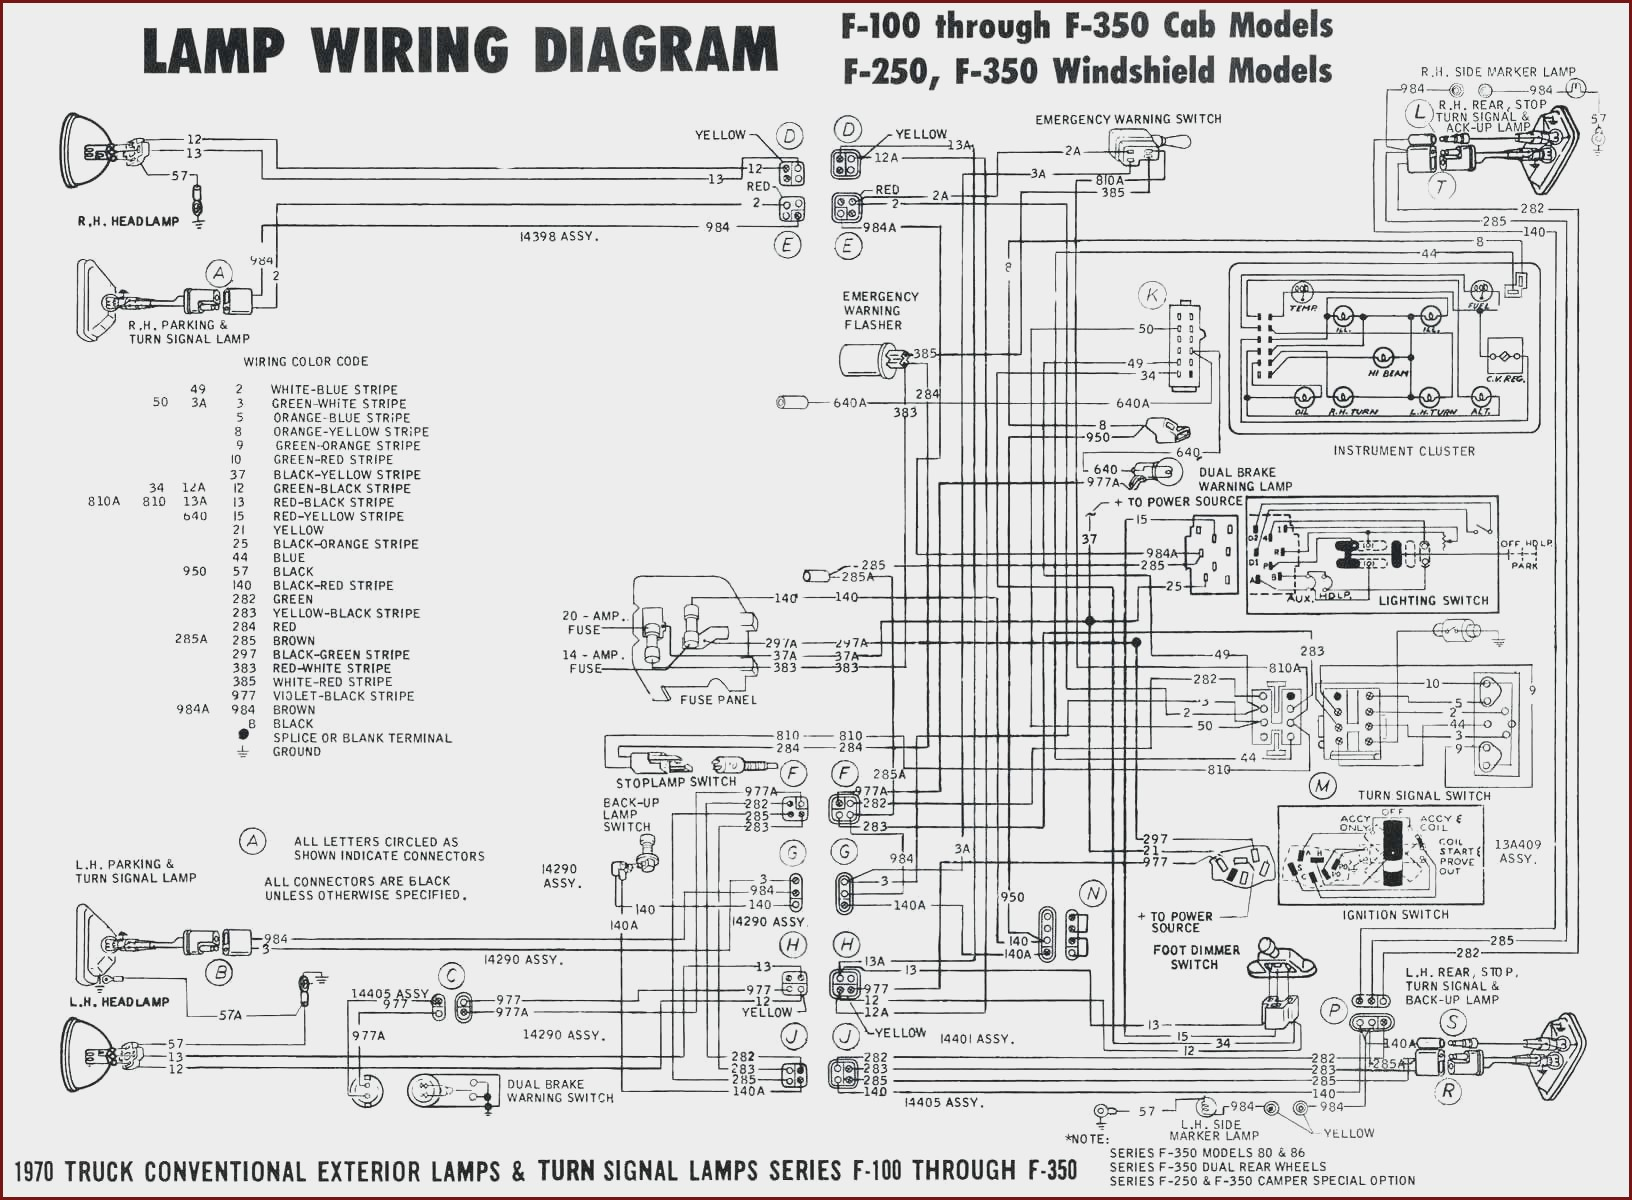 2000 Nissan Maxima Se Engine Diagram Nissan Patrol Y60 Service Manual Pdf at Manuals Library Of 2000 Nissan Maxima Se Engine Diagram